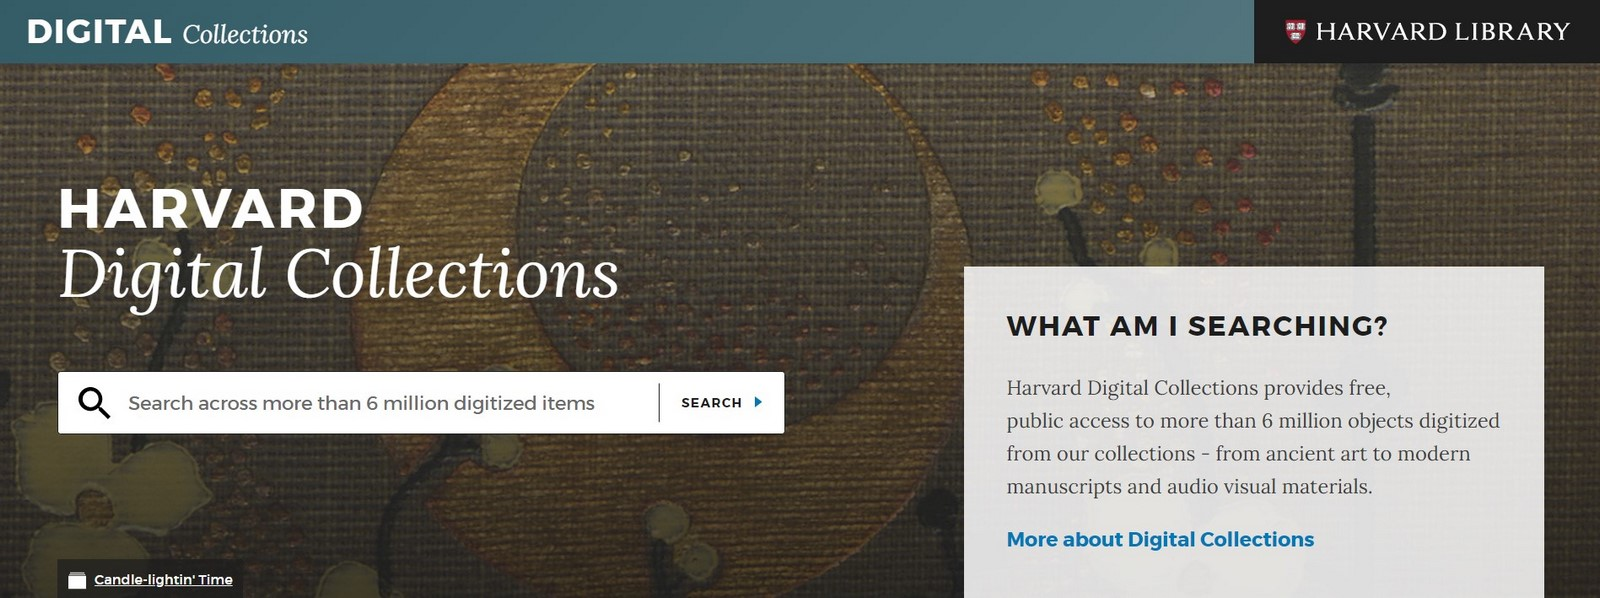 12 Websites That Can Aid Architectural Thesis Research - Sheet9